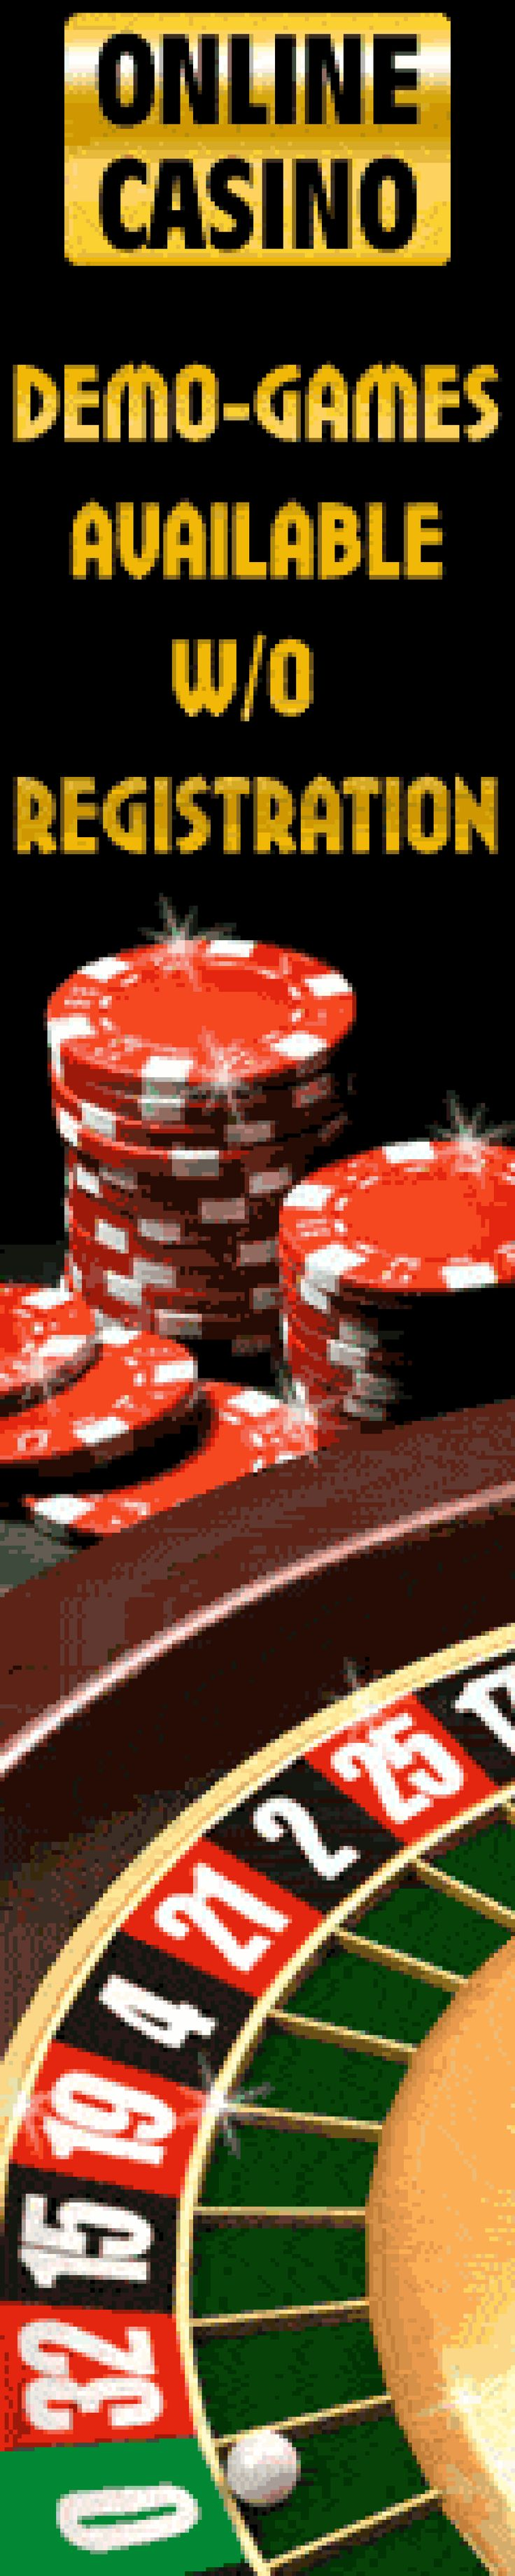 Card casino eco online recommended online casinos in canada